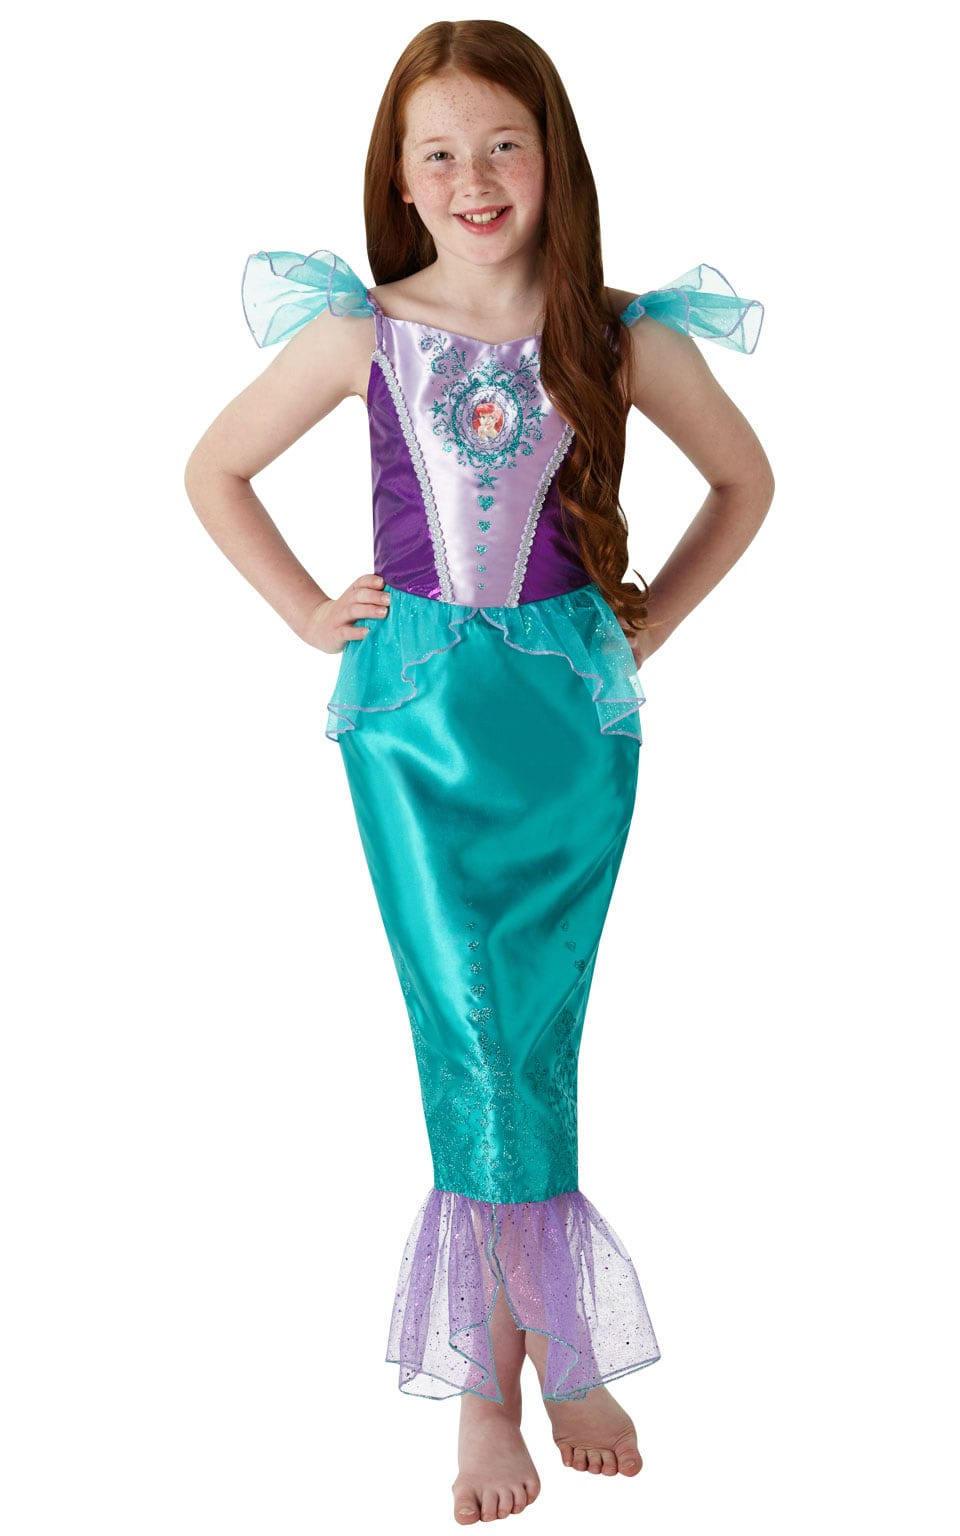 Disney Princess Gem Princess Ariel Tween Children's Fancy Dress Costume